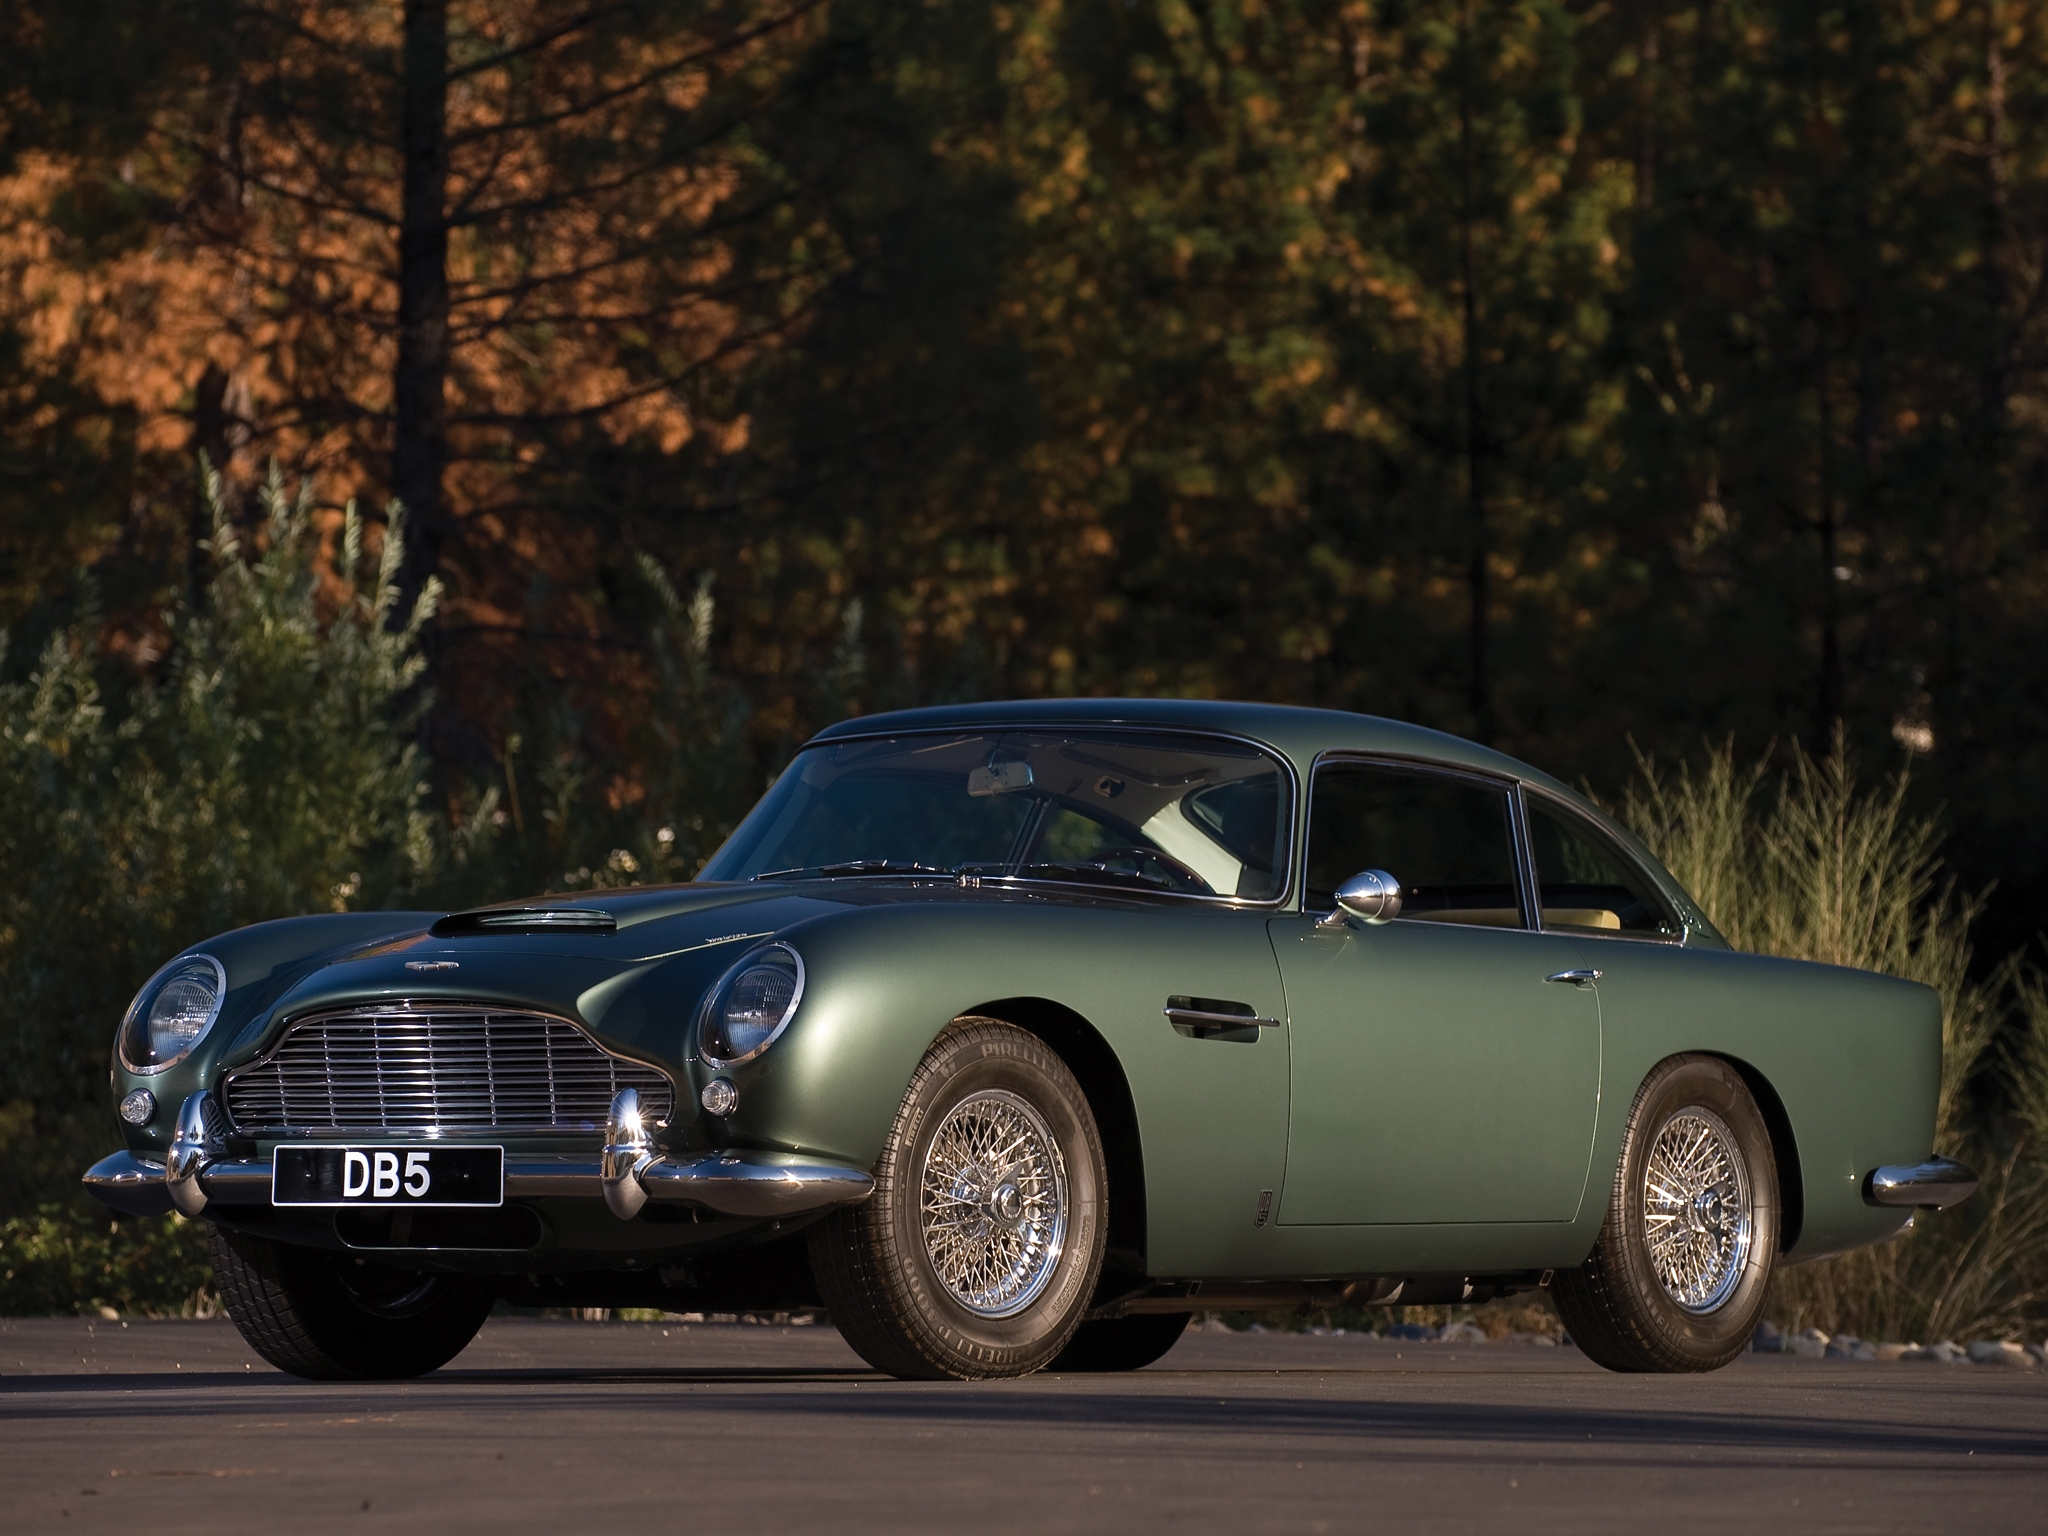 90779 download wallpaper Auto, Aston Martin, Cars, Classic screensavers and pictures for free